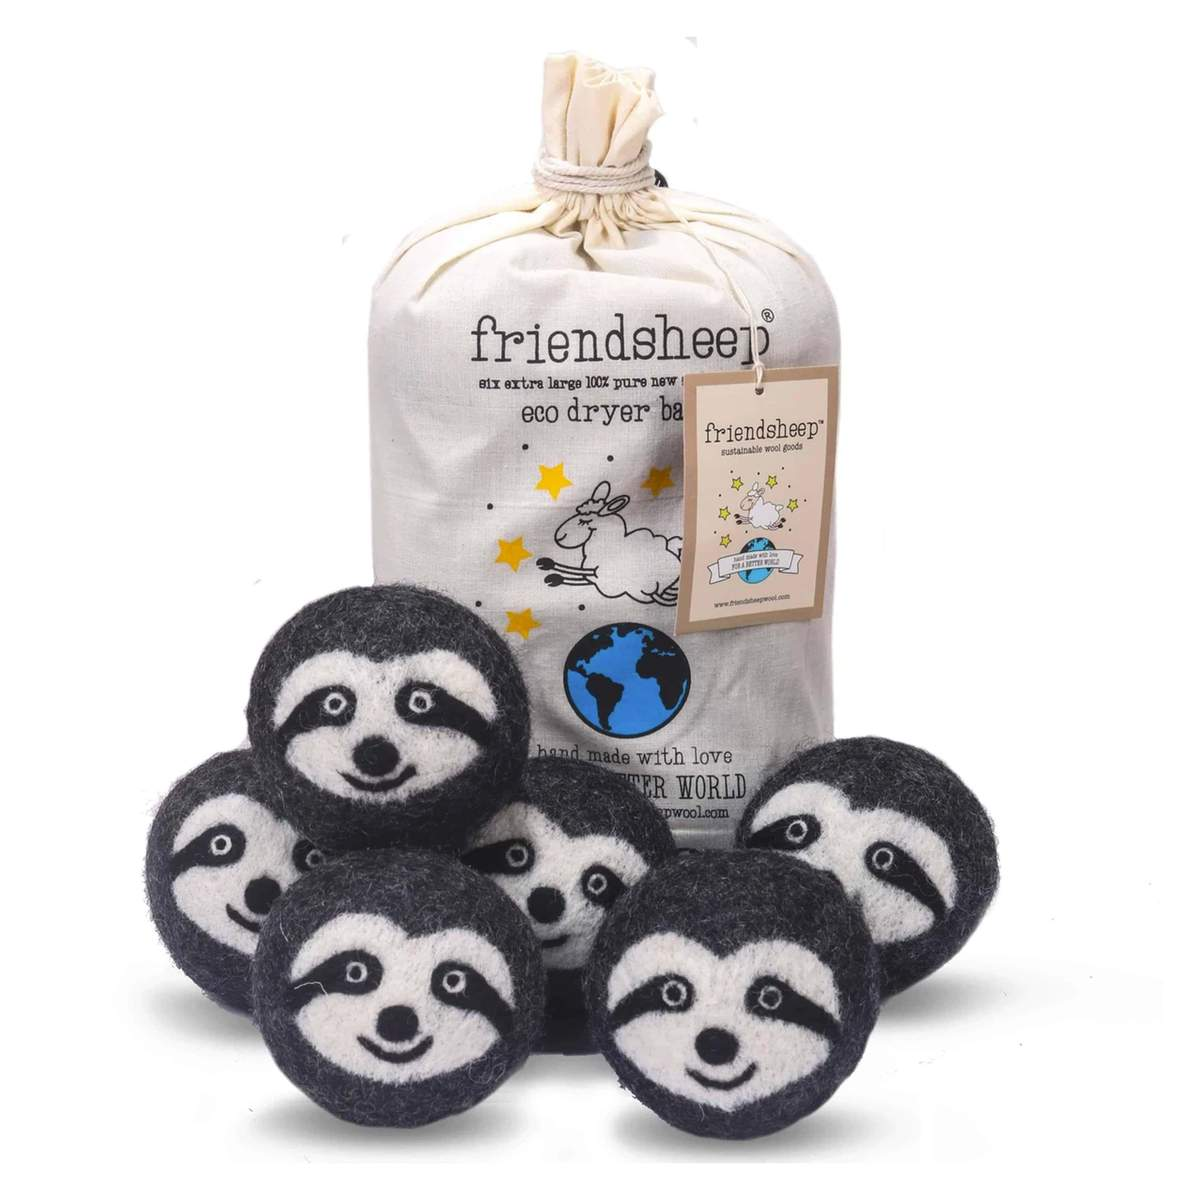 Friendsheep Eco Dryer Balls Pack of 6 - Sloth Squad